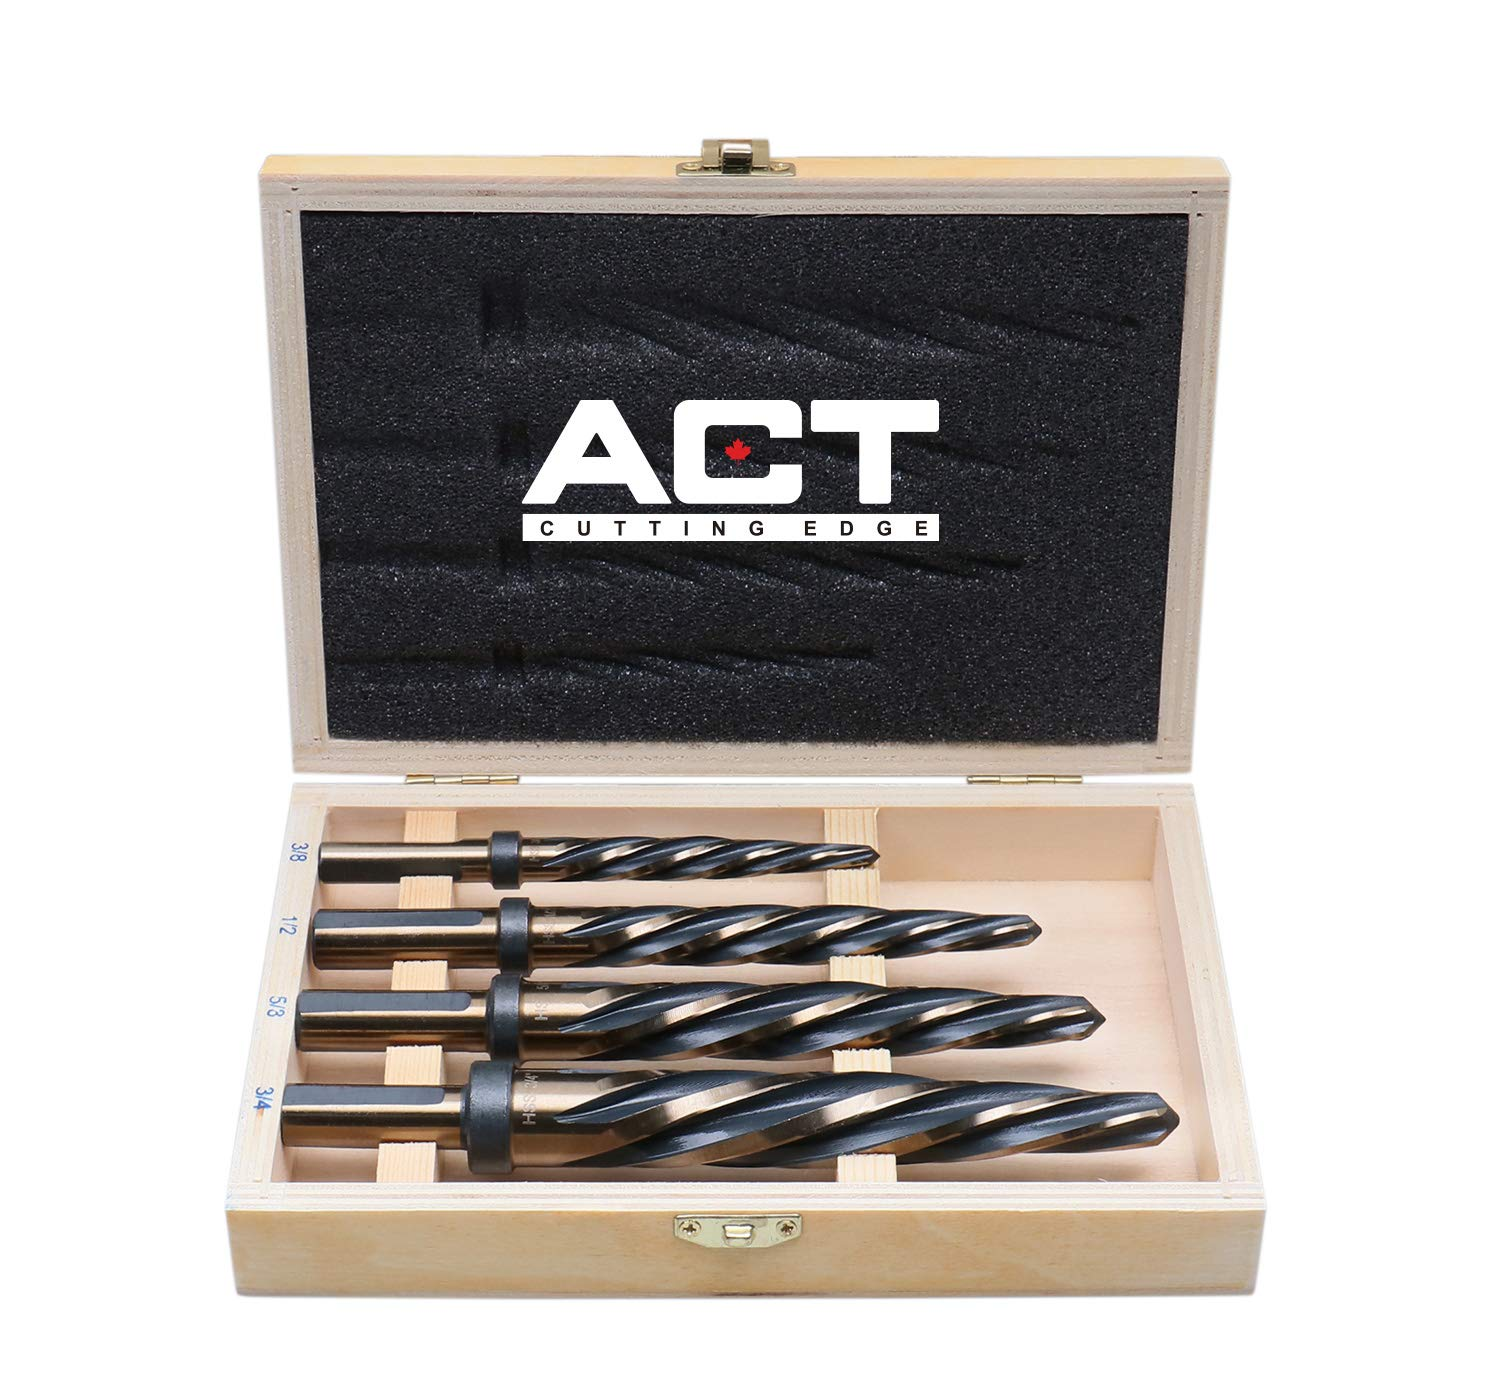 """Accusize Industrial Tools 4 Pc H.S.S. Standard Spiral Flute Super Premium Car Reamer Set, 3/8"""", 1/2"""", 5/8"""", 3/4"""", to Fit 1/2'' Shank Chuck, 0522-1800"""